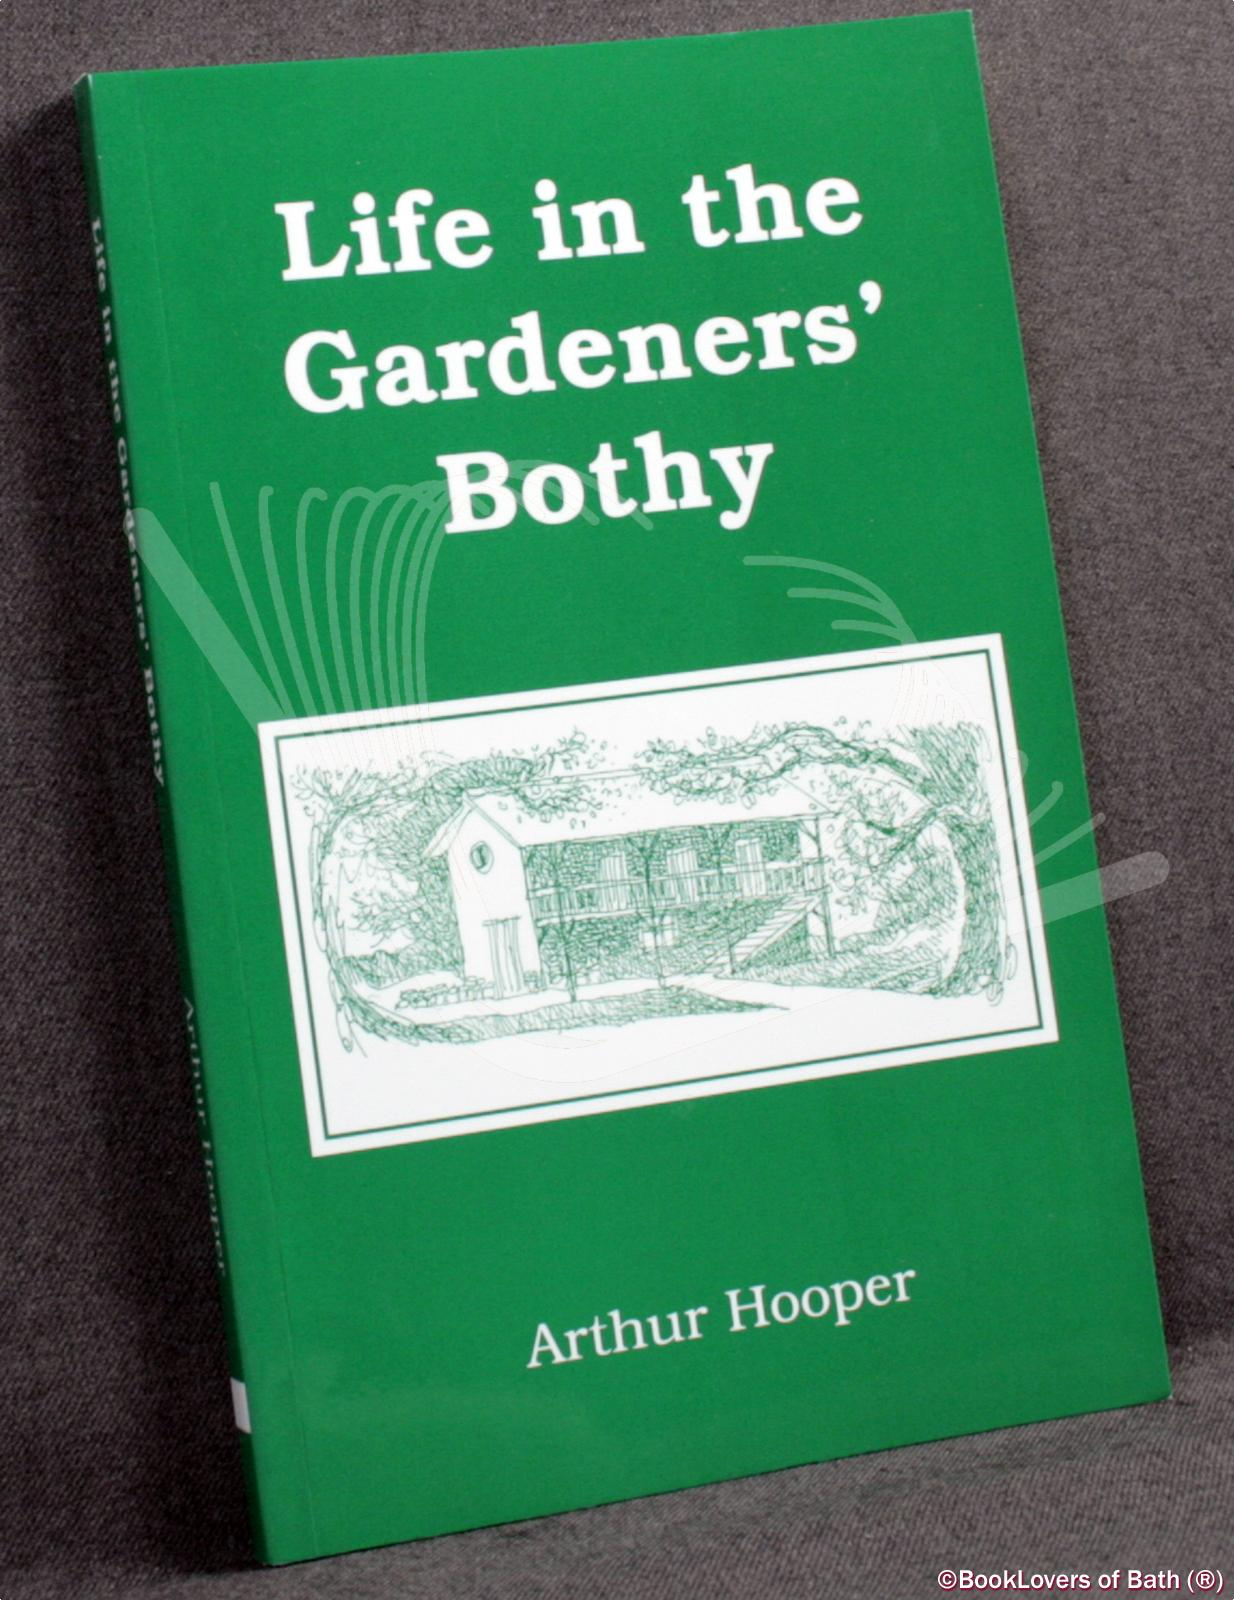 Life in the Gardeners' Bothy - Arthur Hooper